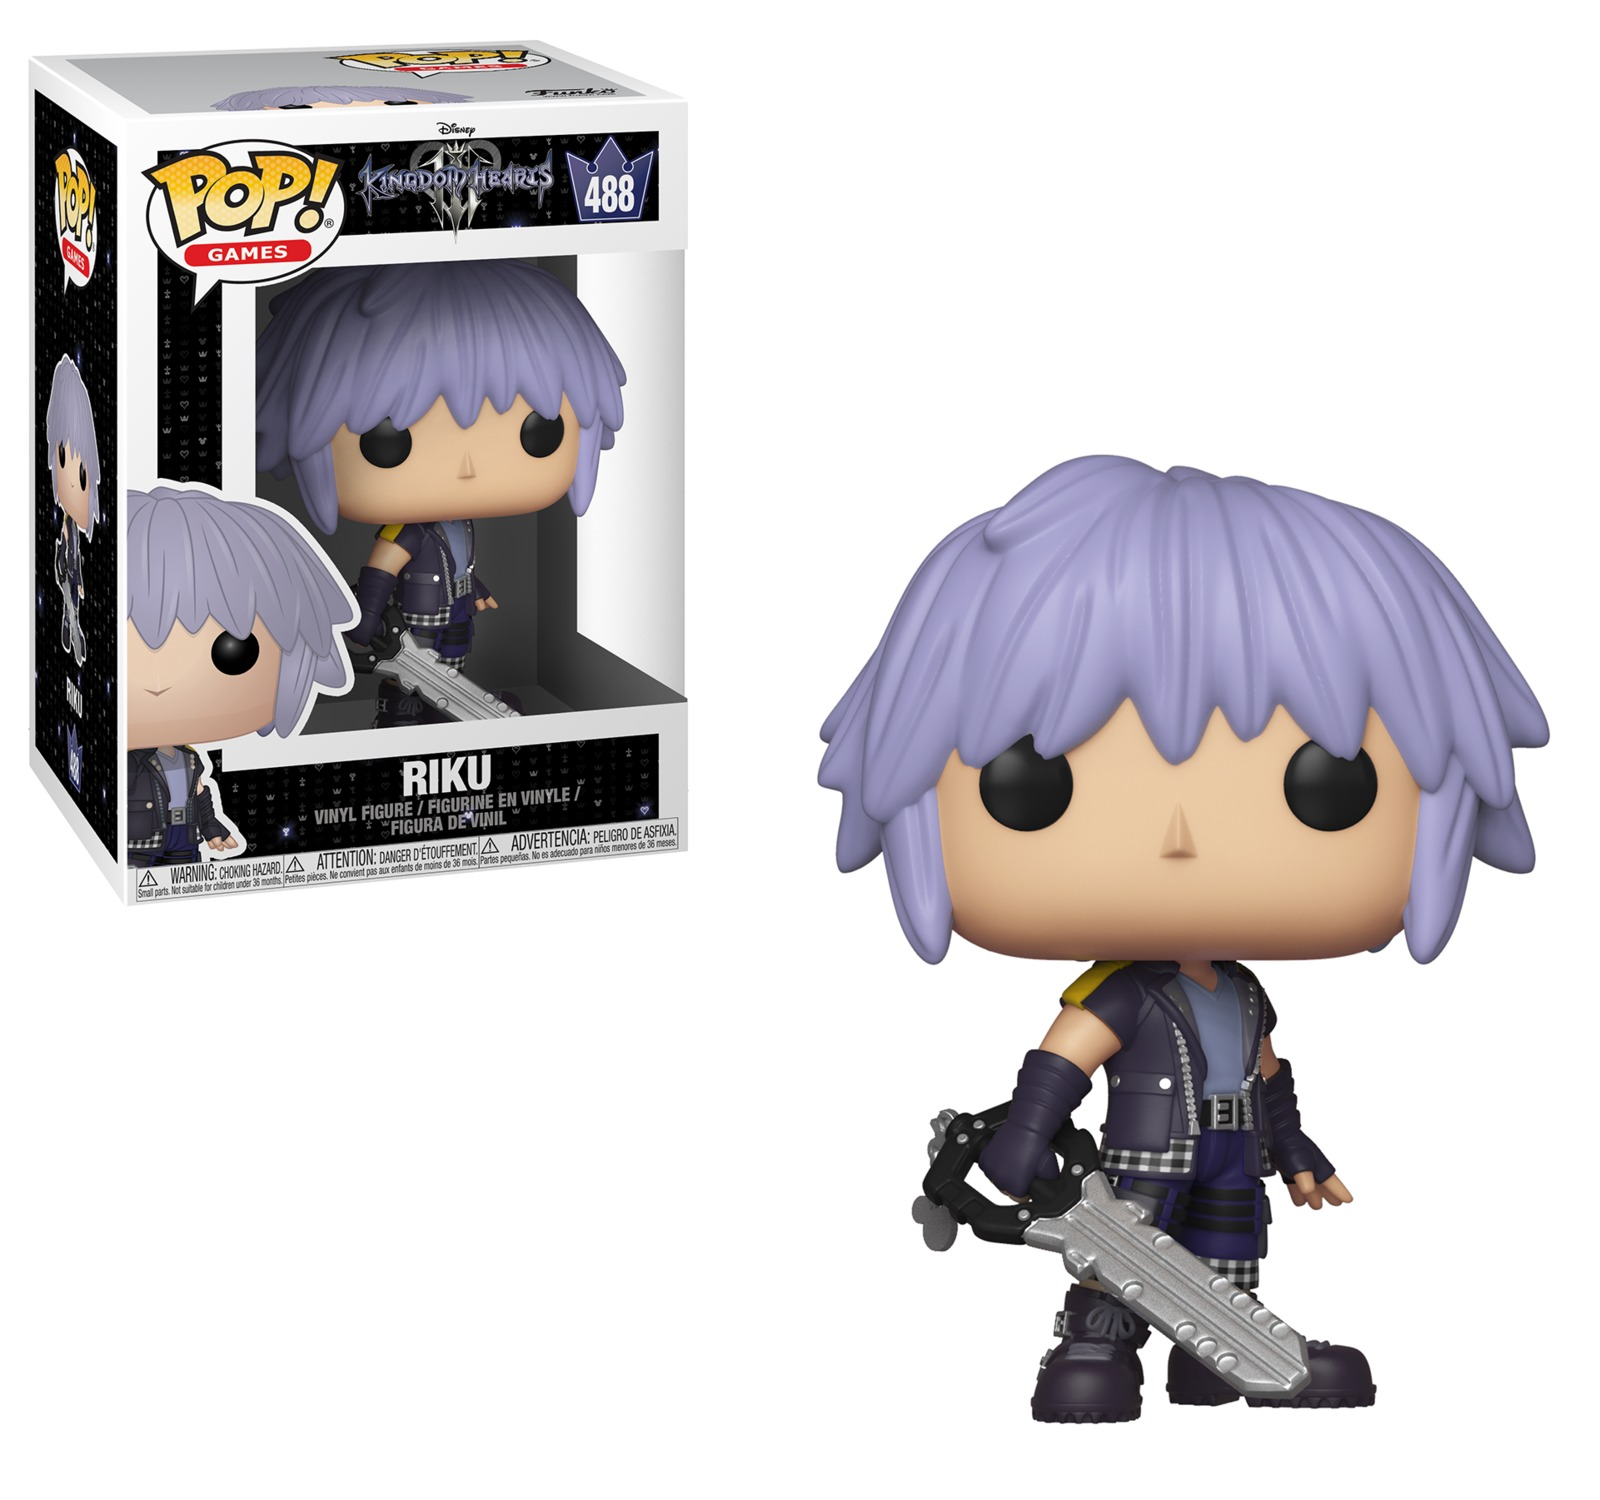 Kingdom Hearts III - Riku Pop! Vinyl Figure image